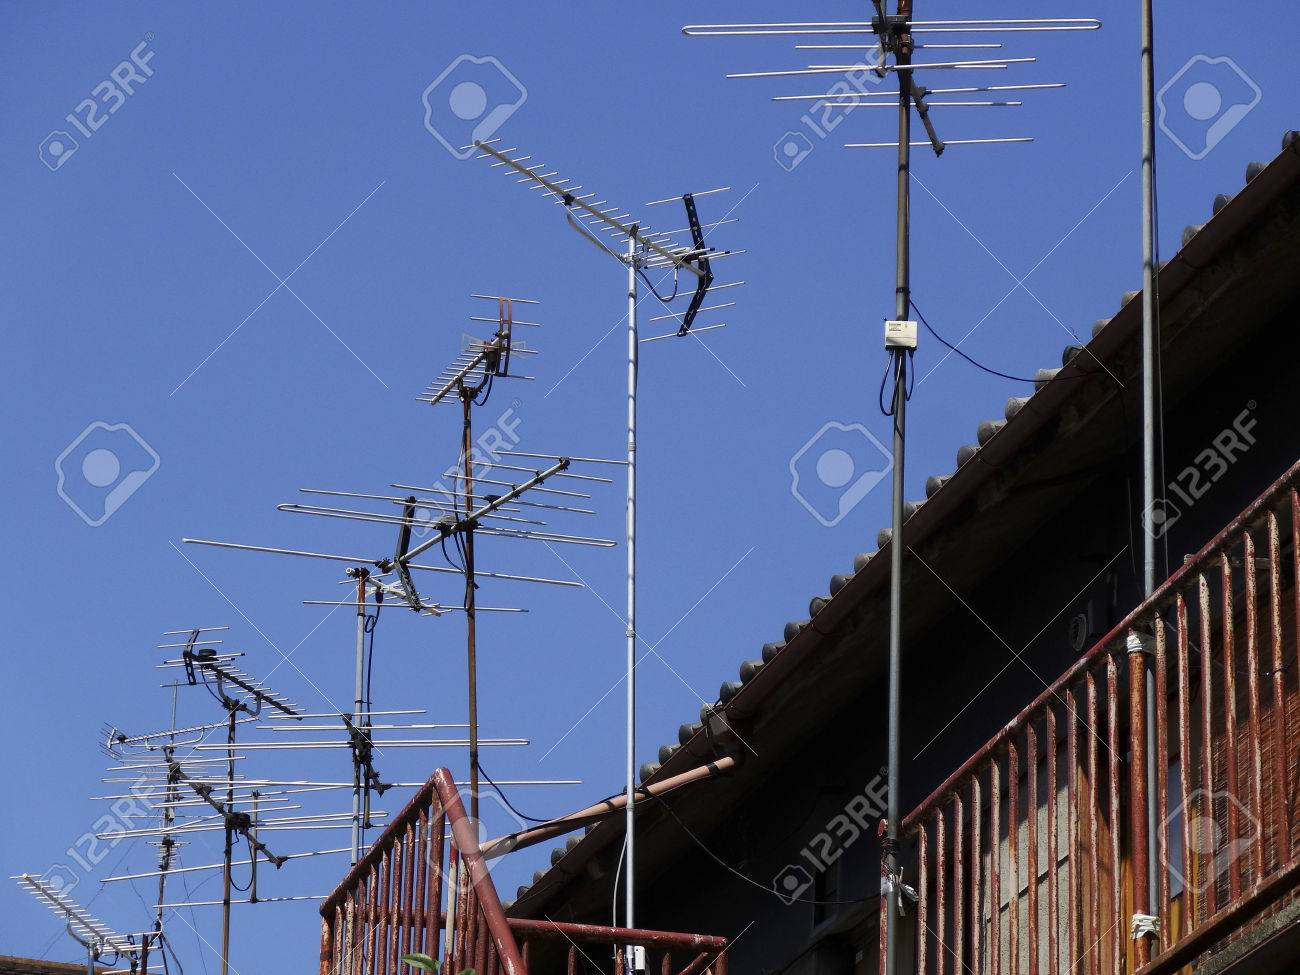 Apartment Flood The TV Antenna Stock Photo, Picture And Royalty Free ...